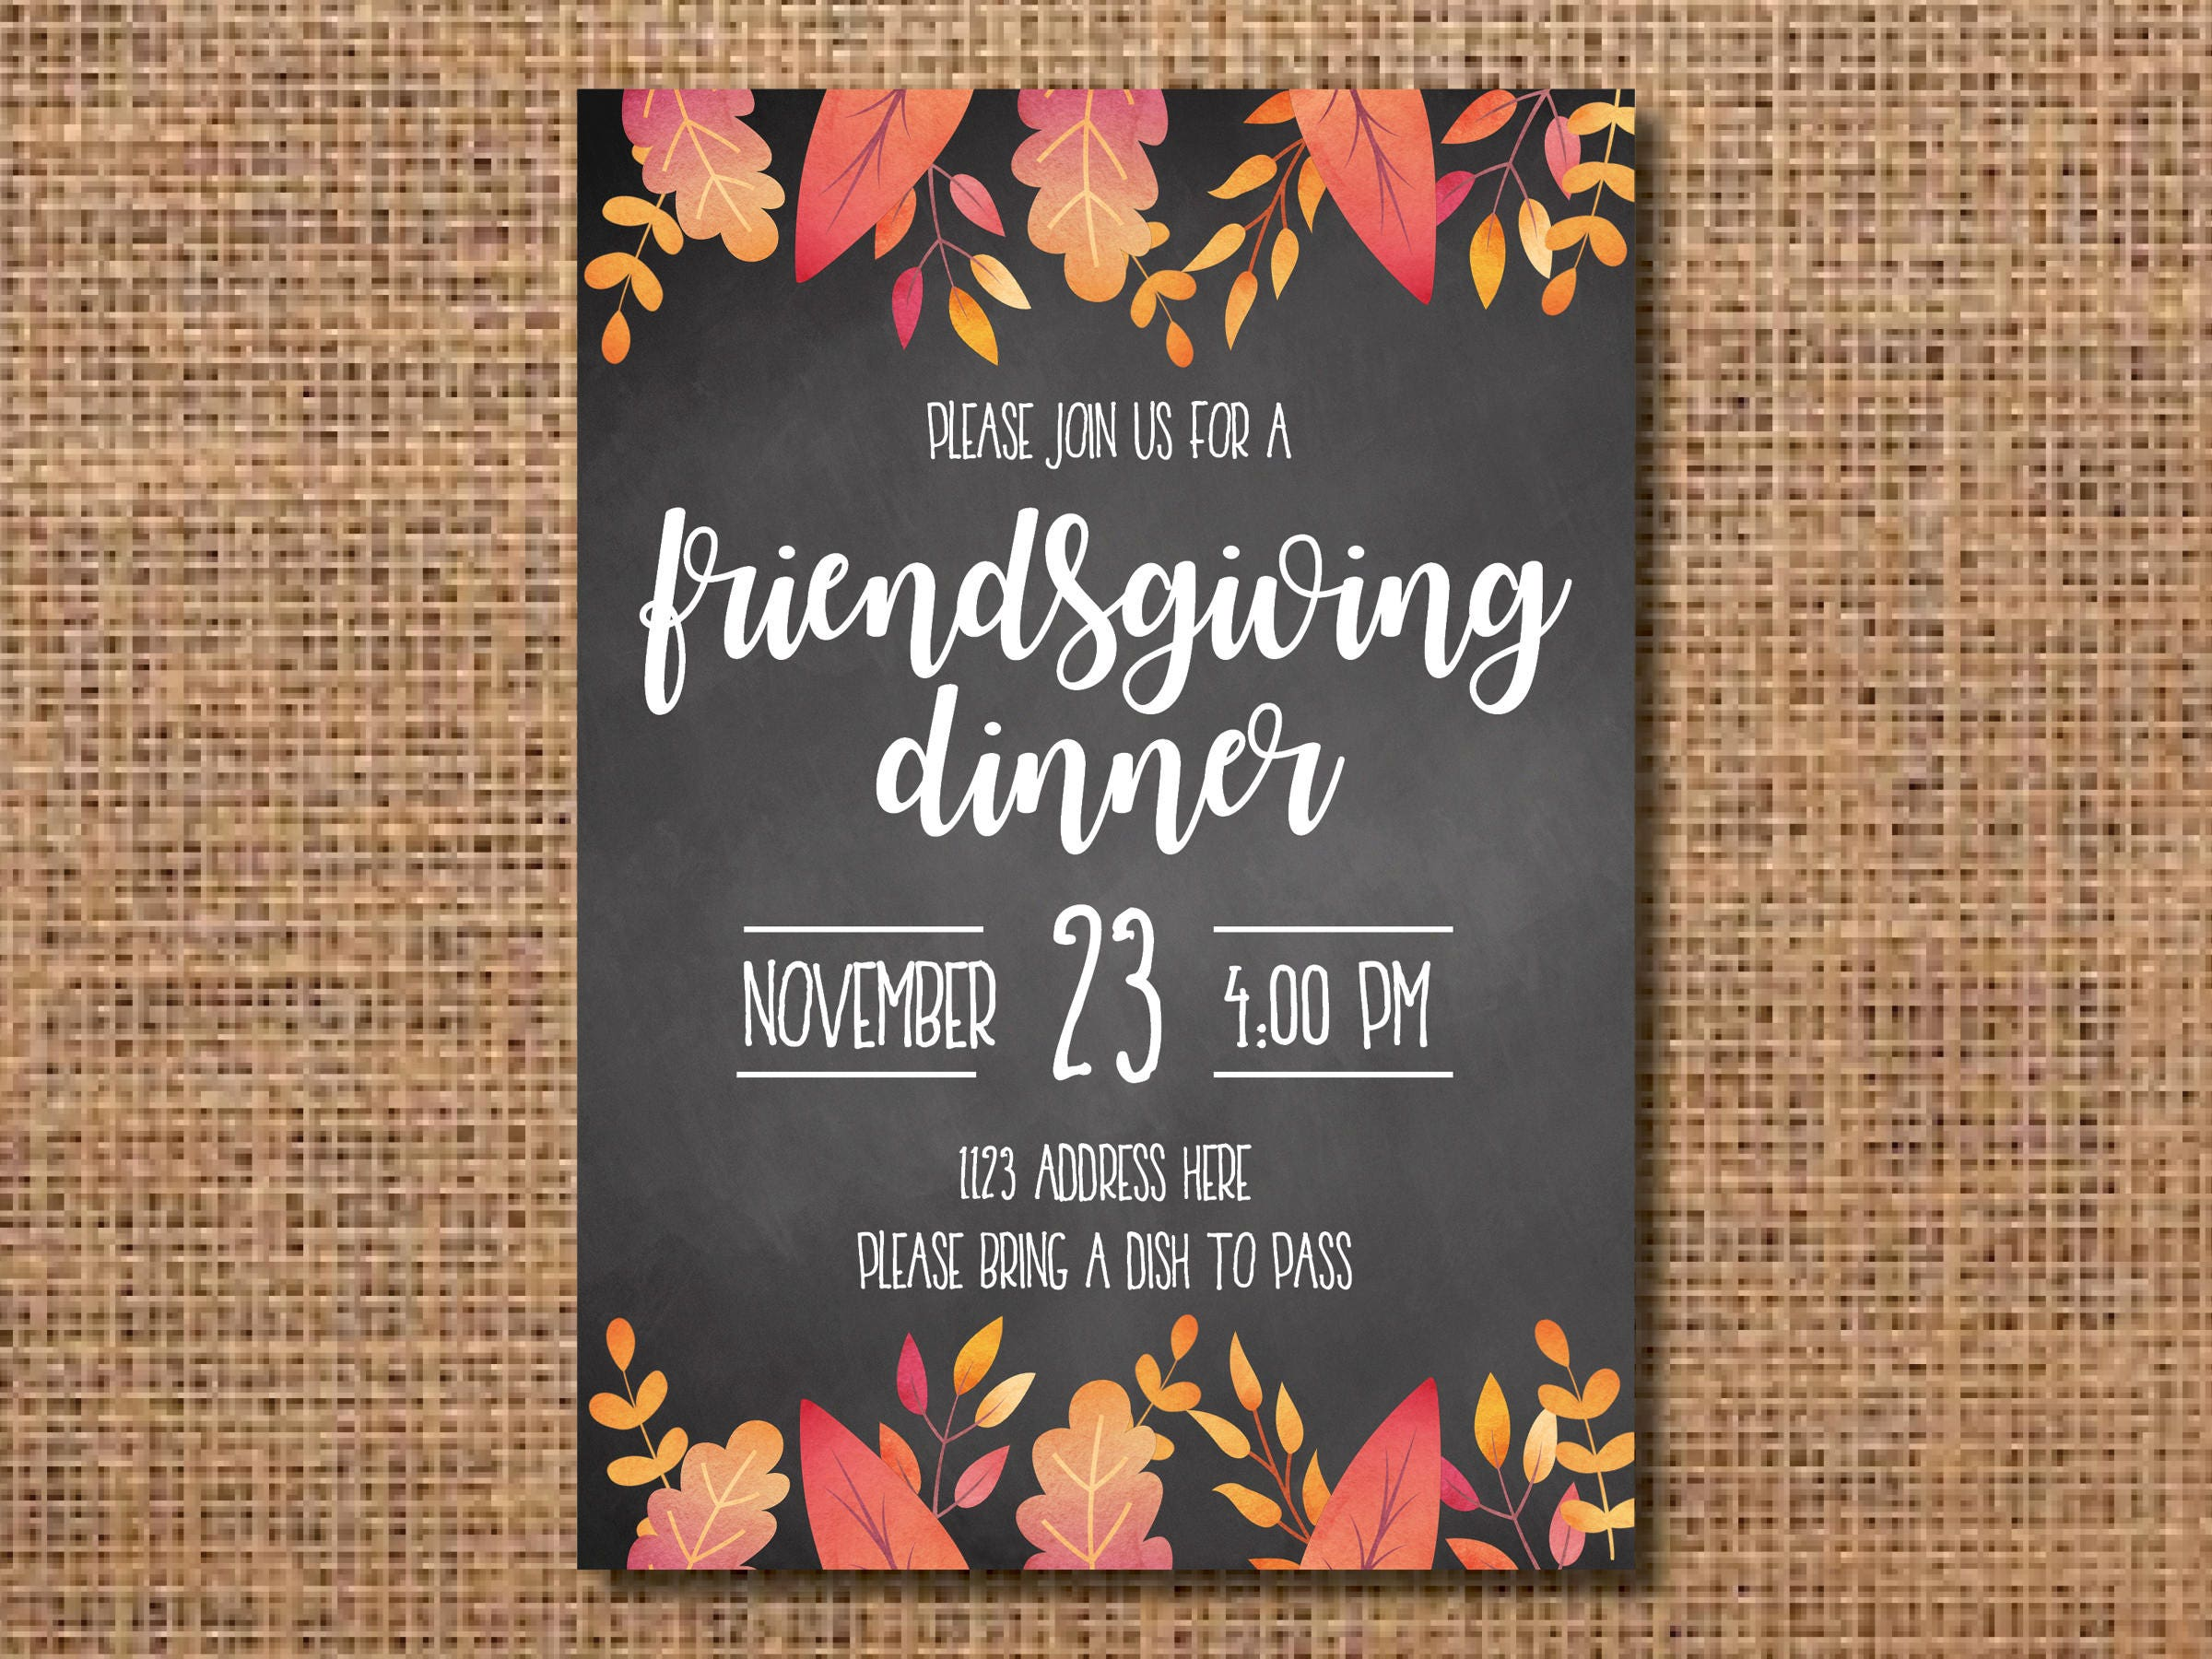 Friendsgiving Invitation, Thanksgiving Invitation, Friendsgiving ...